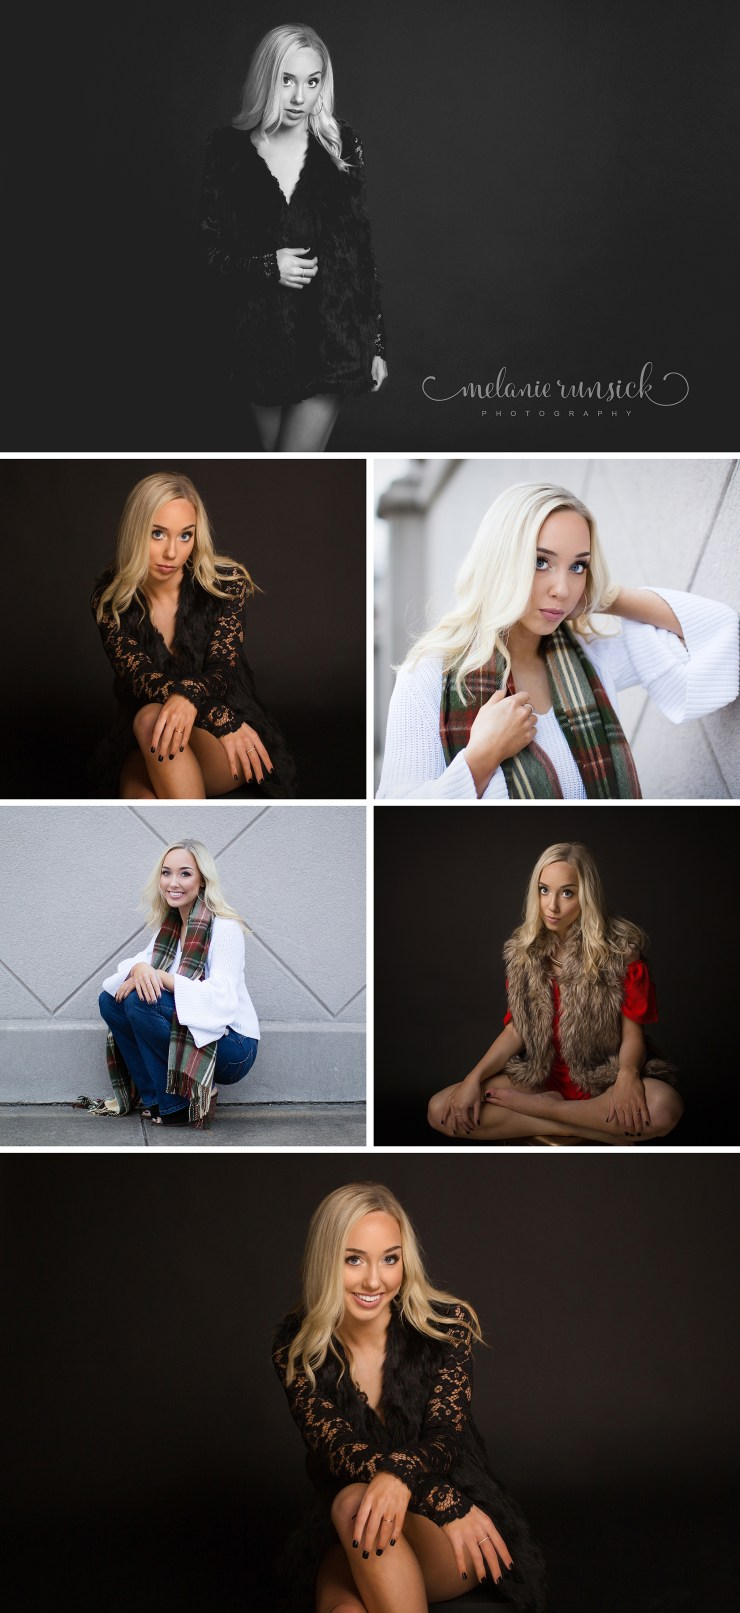 Valley View Senior Photographer Melanie Runsick Photography Jonesboro Arkansas Senior Girl Photographer Jonesboro Arkansas Senior Portrait Photographer